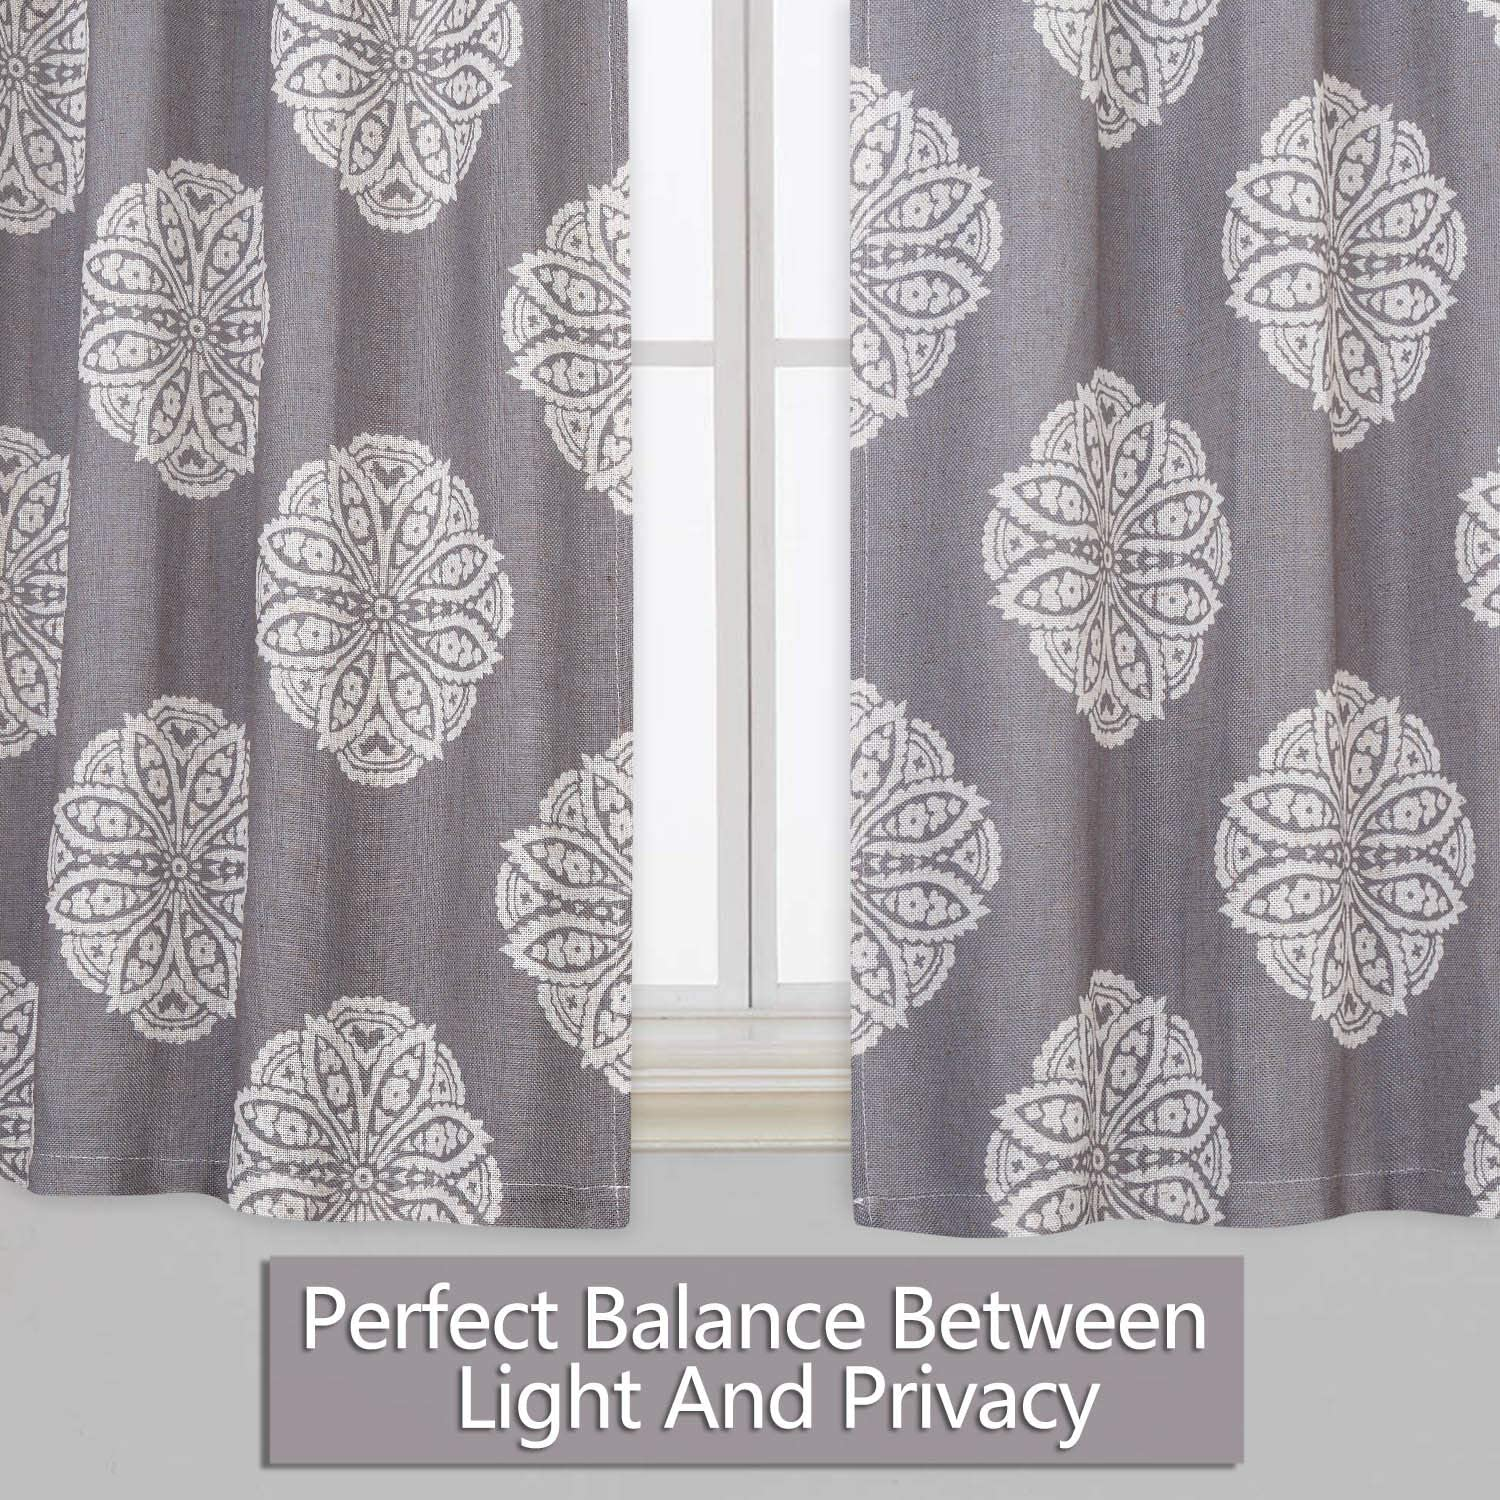 CAROMIO Tier Curtains 30 Inch Length Floral Medallion Damask Print Linen Blended Short Tier Curtains for Kitchen Cafe Small Half Window Curtains for Bathroom Dark Navy